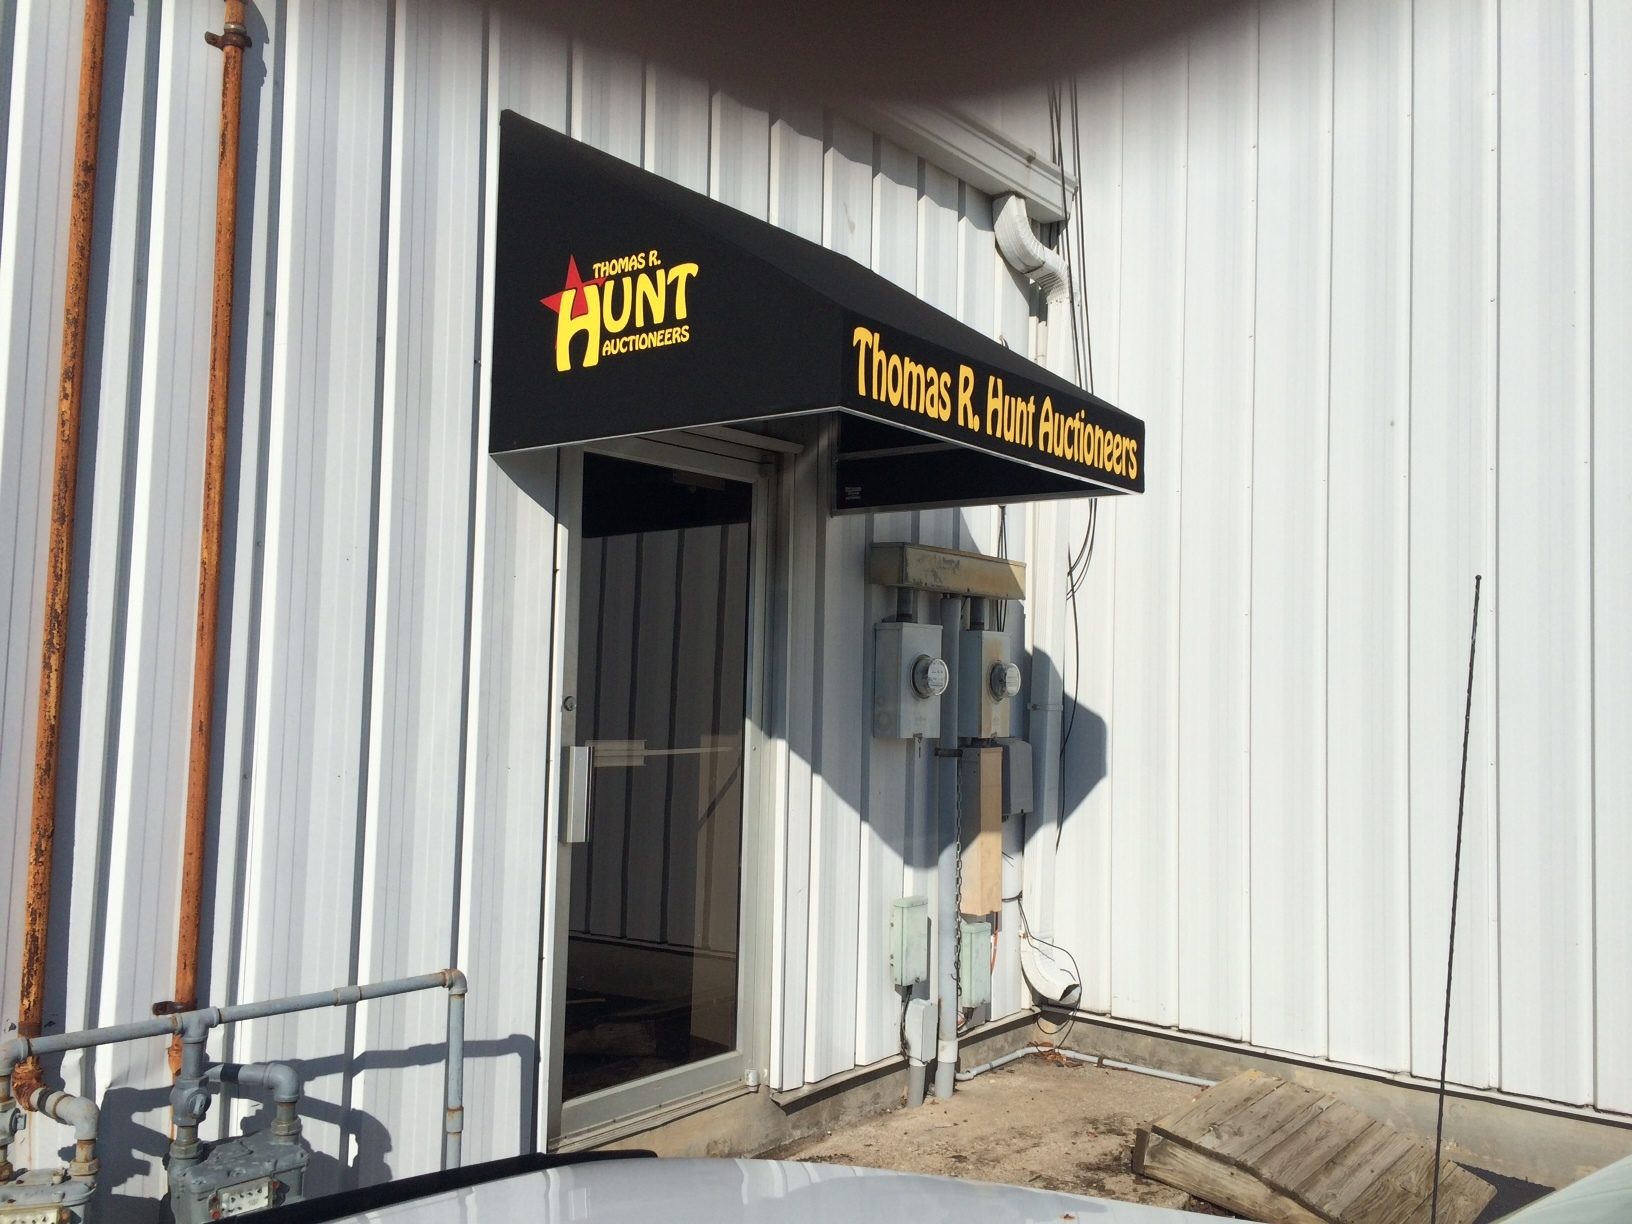 U S Awning Company Coupons near me in Bowling Green | 8coupons